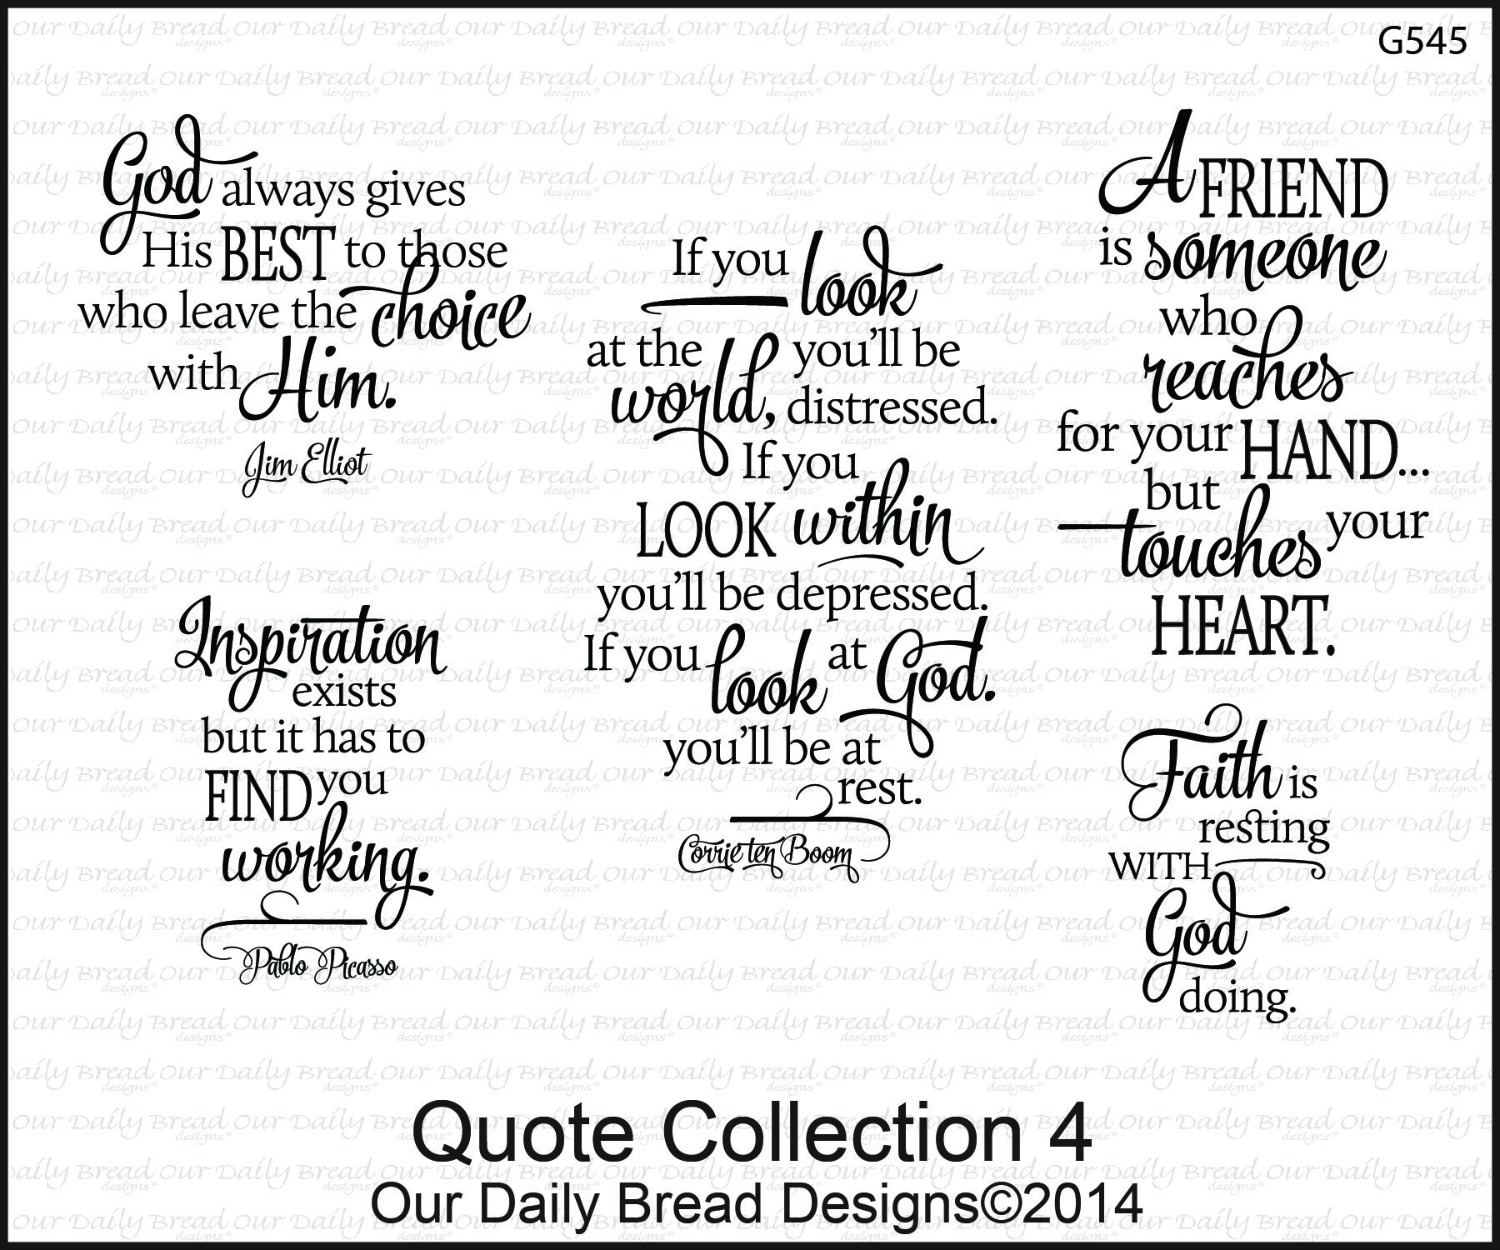 Quotes Collection Our Daily Bread Designs Blog Anniversary Celebration Blog Hop